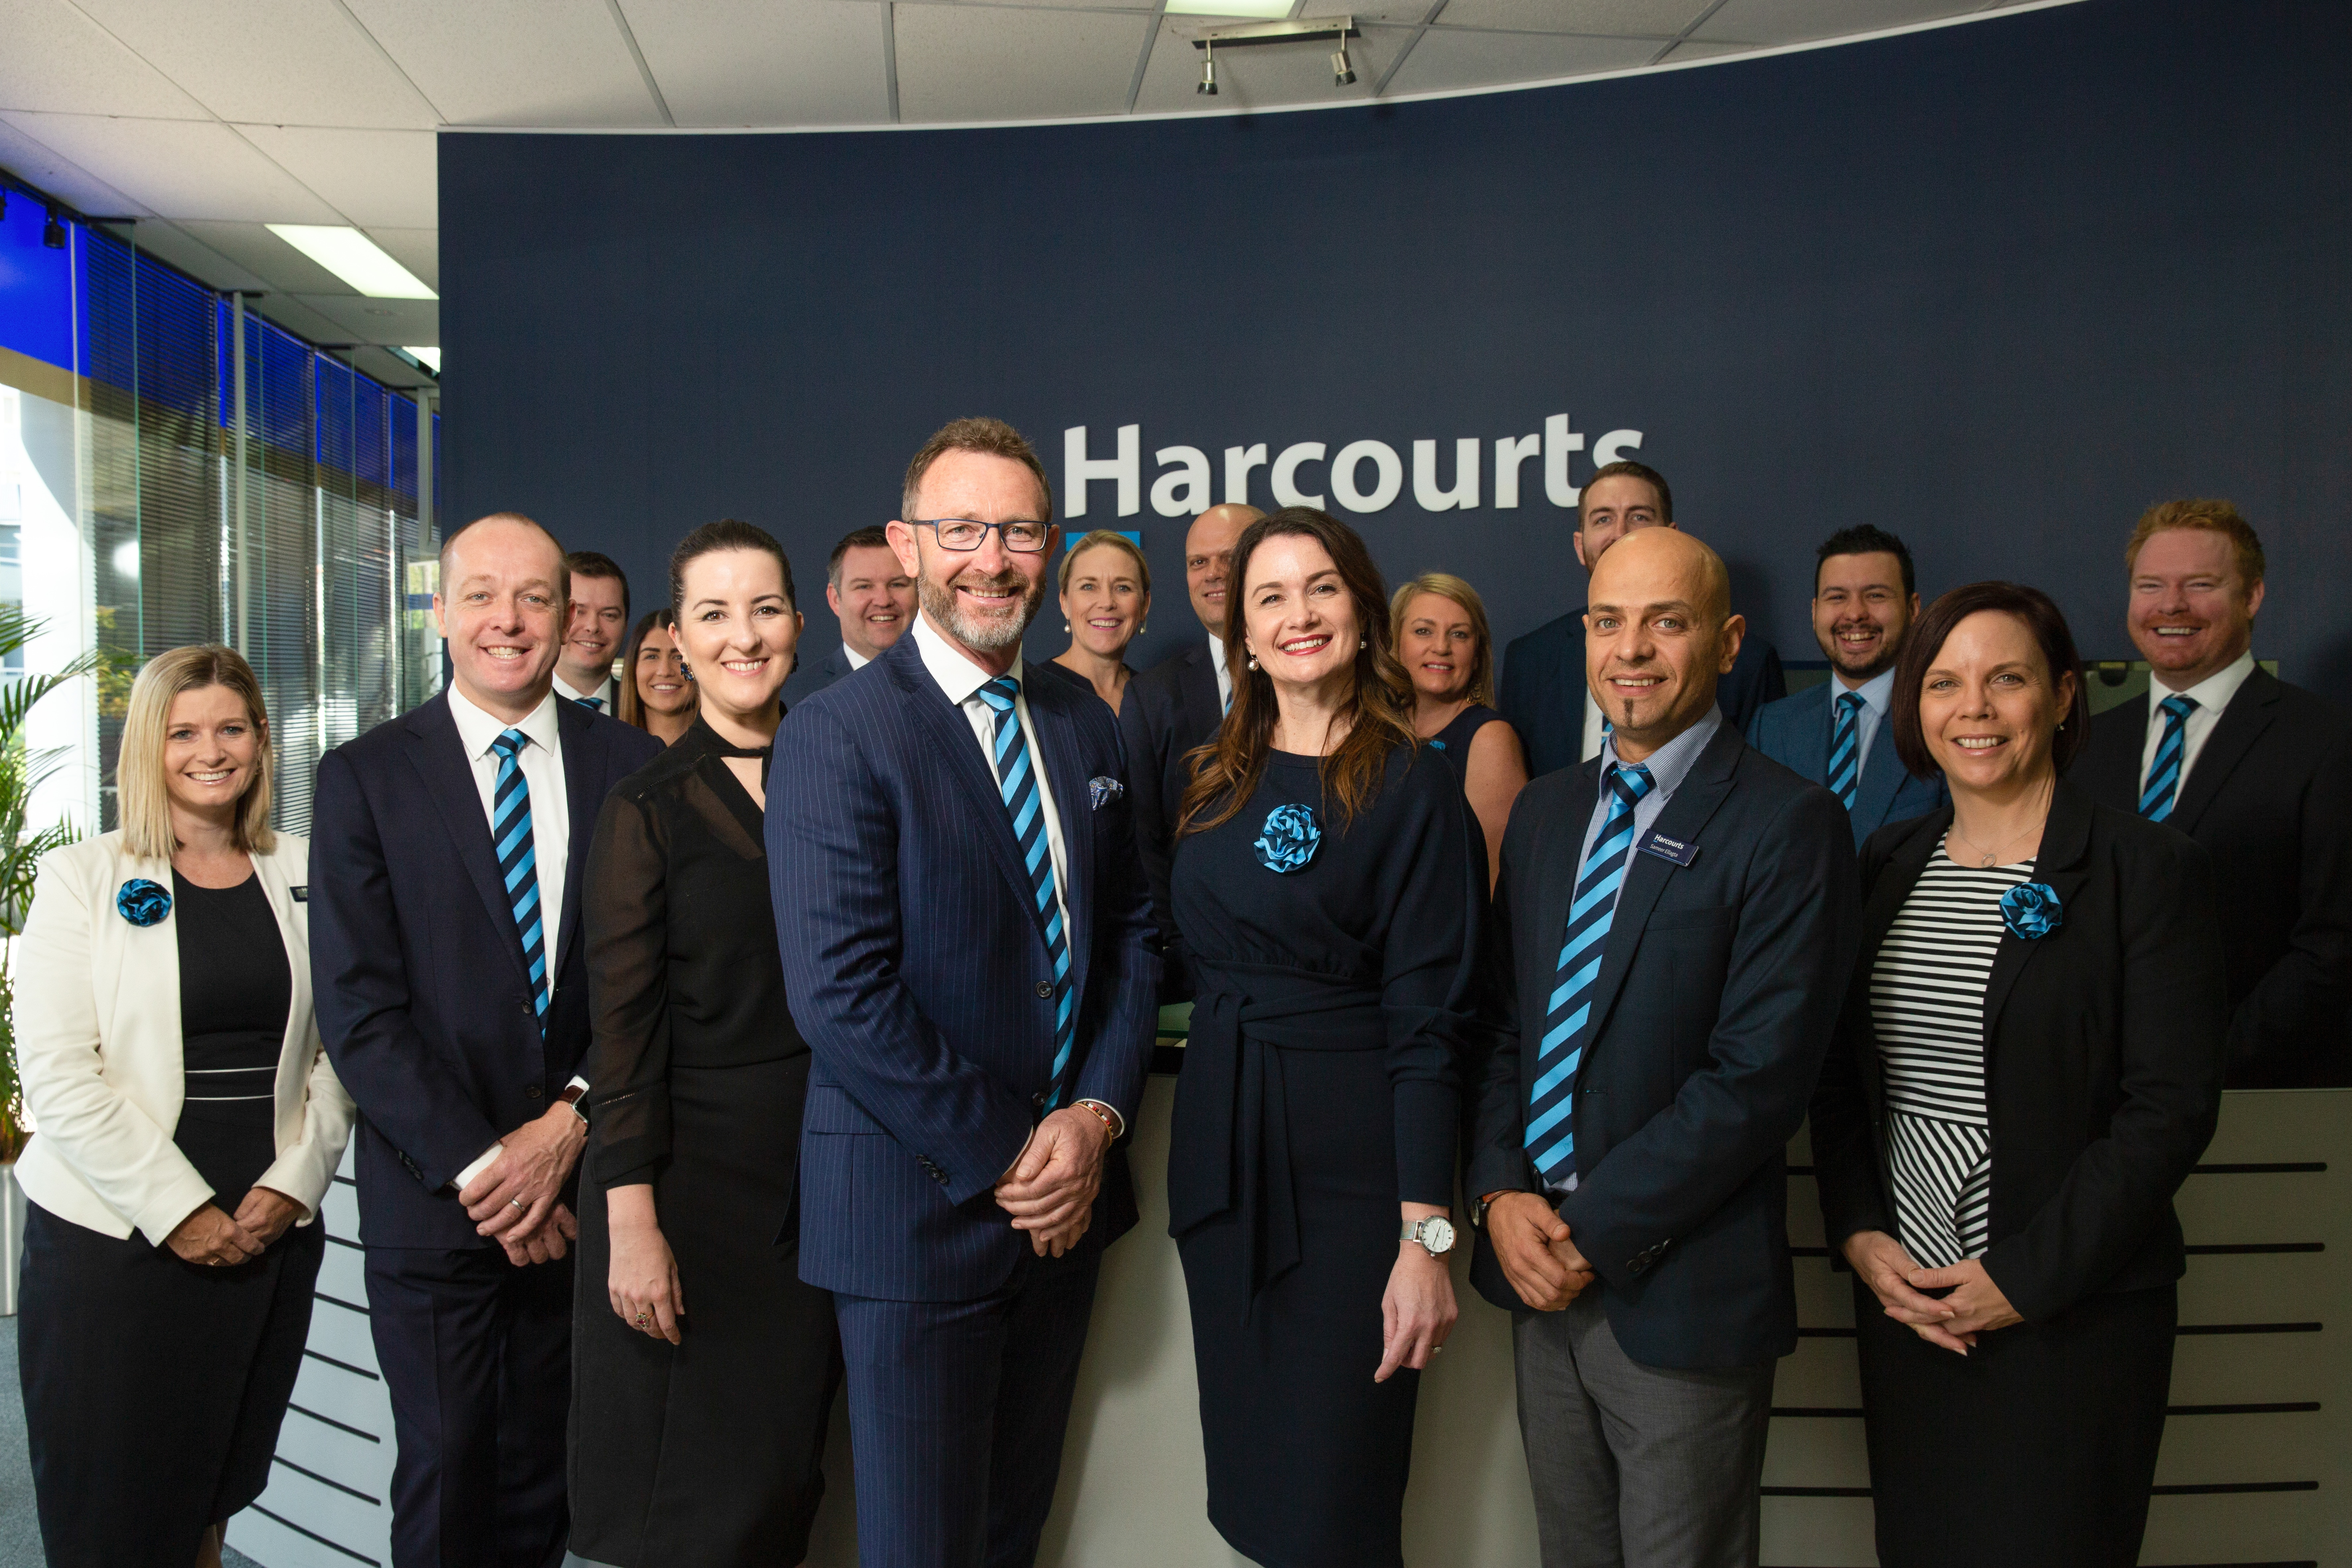 Harcourts Solutions Honoured with AREA Award for Brand Marketing Campaign Excellence